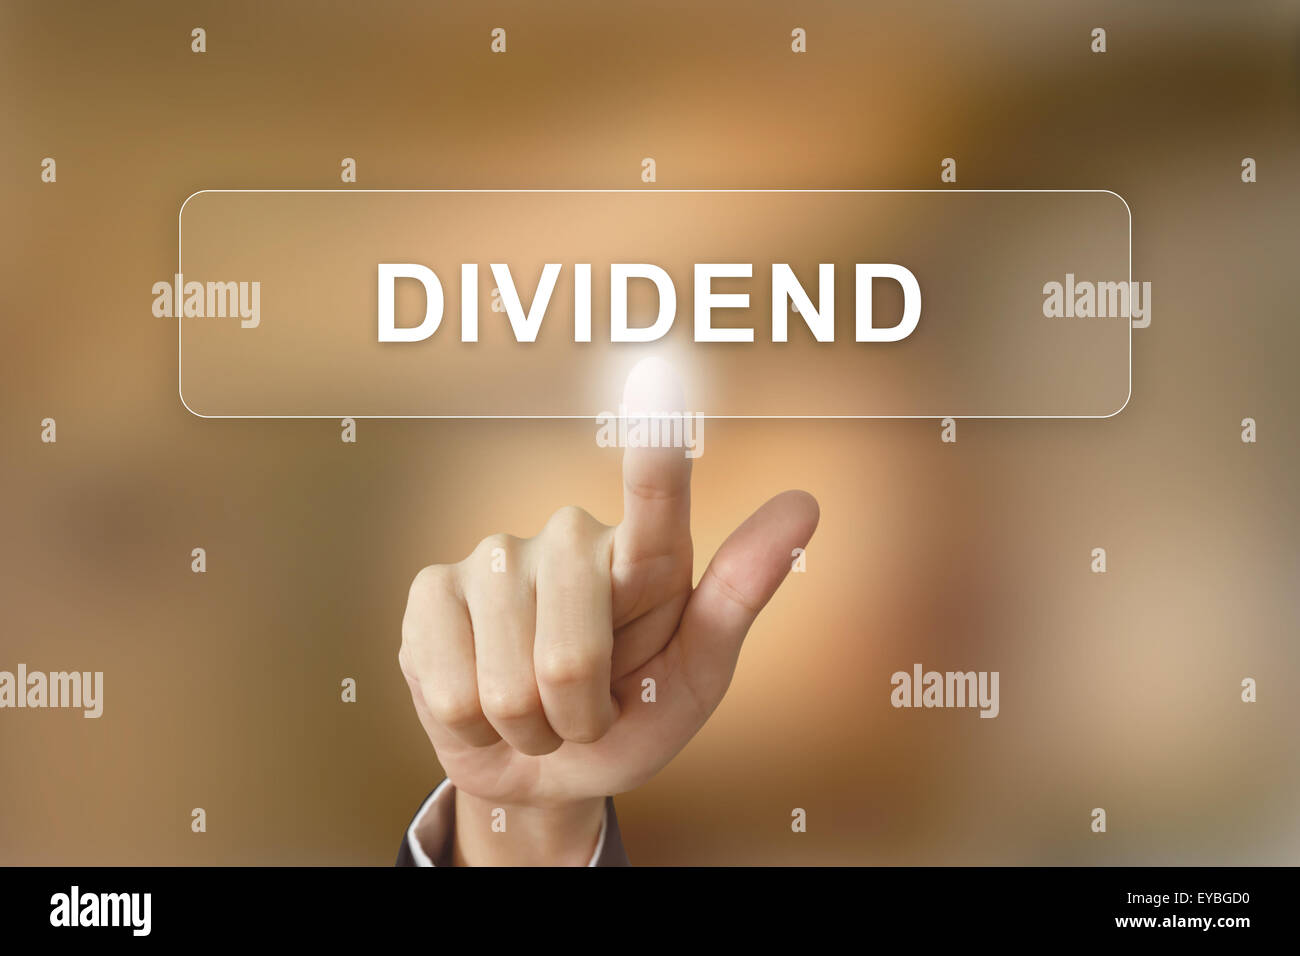 business hand pushing dividend button on blurred background - Stock Image